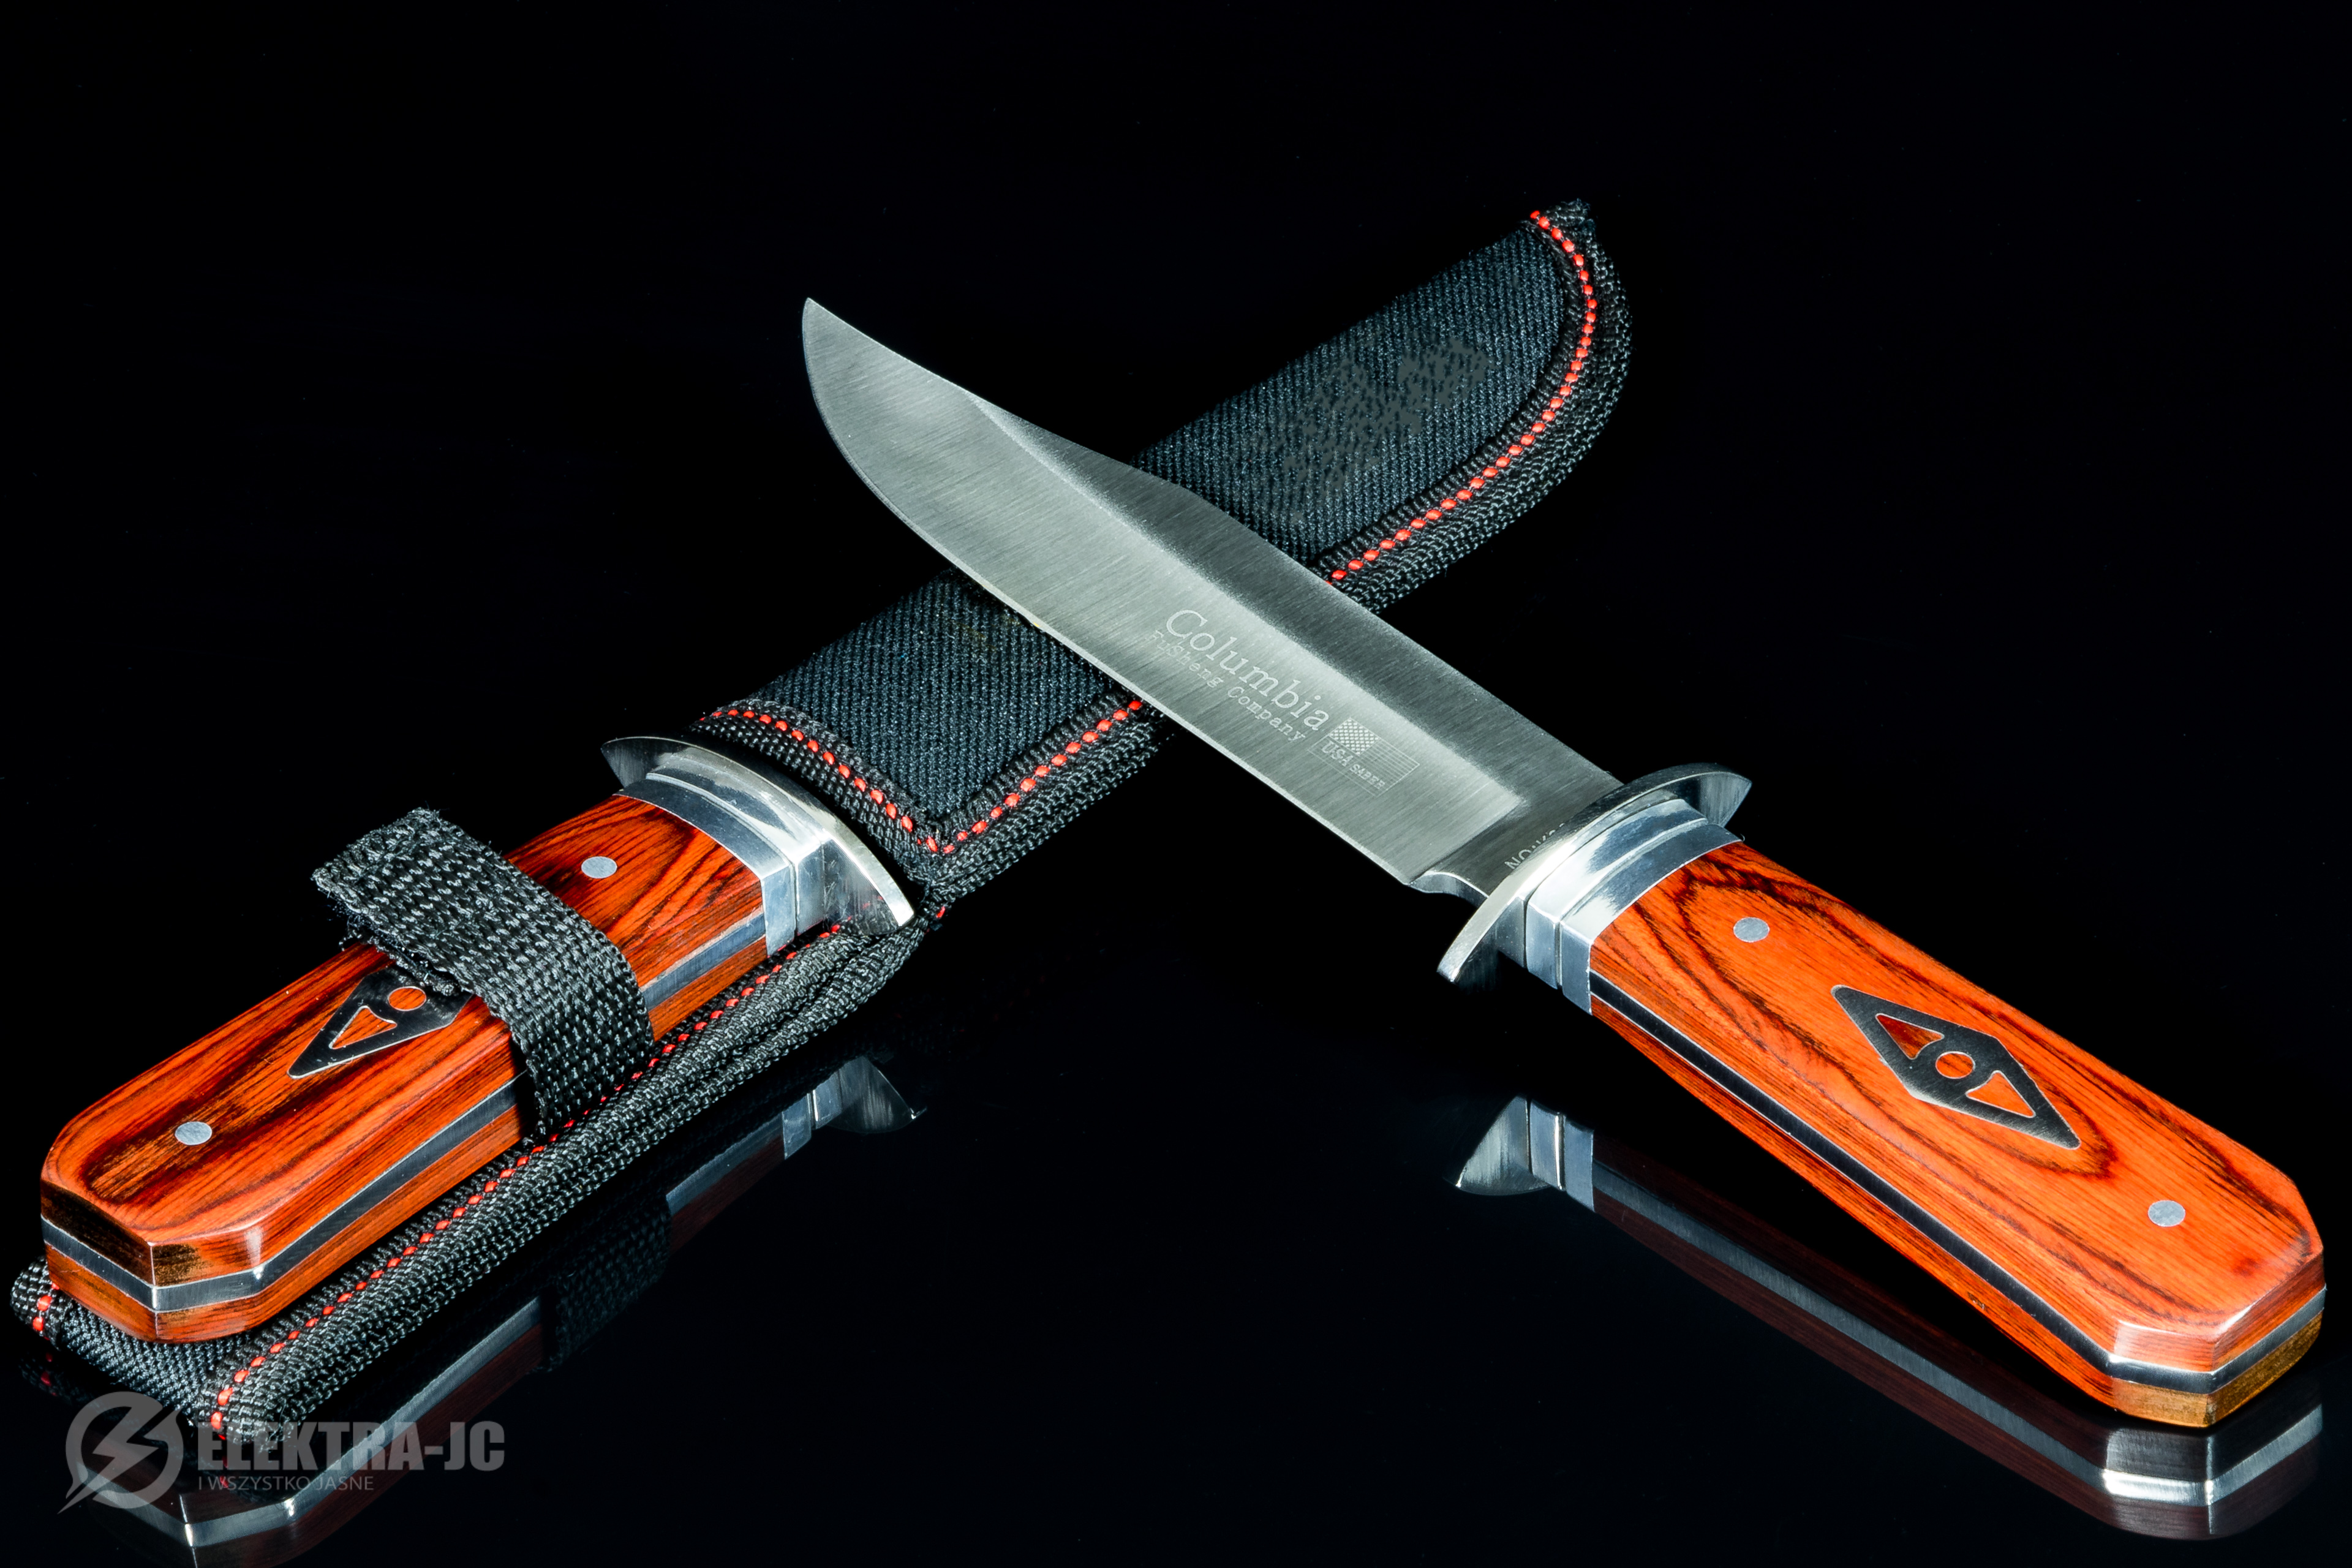 Details about Tourist hunting knife Columbia - NT117 - SURVIVAL KNIFE